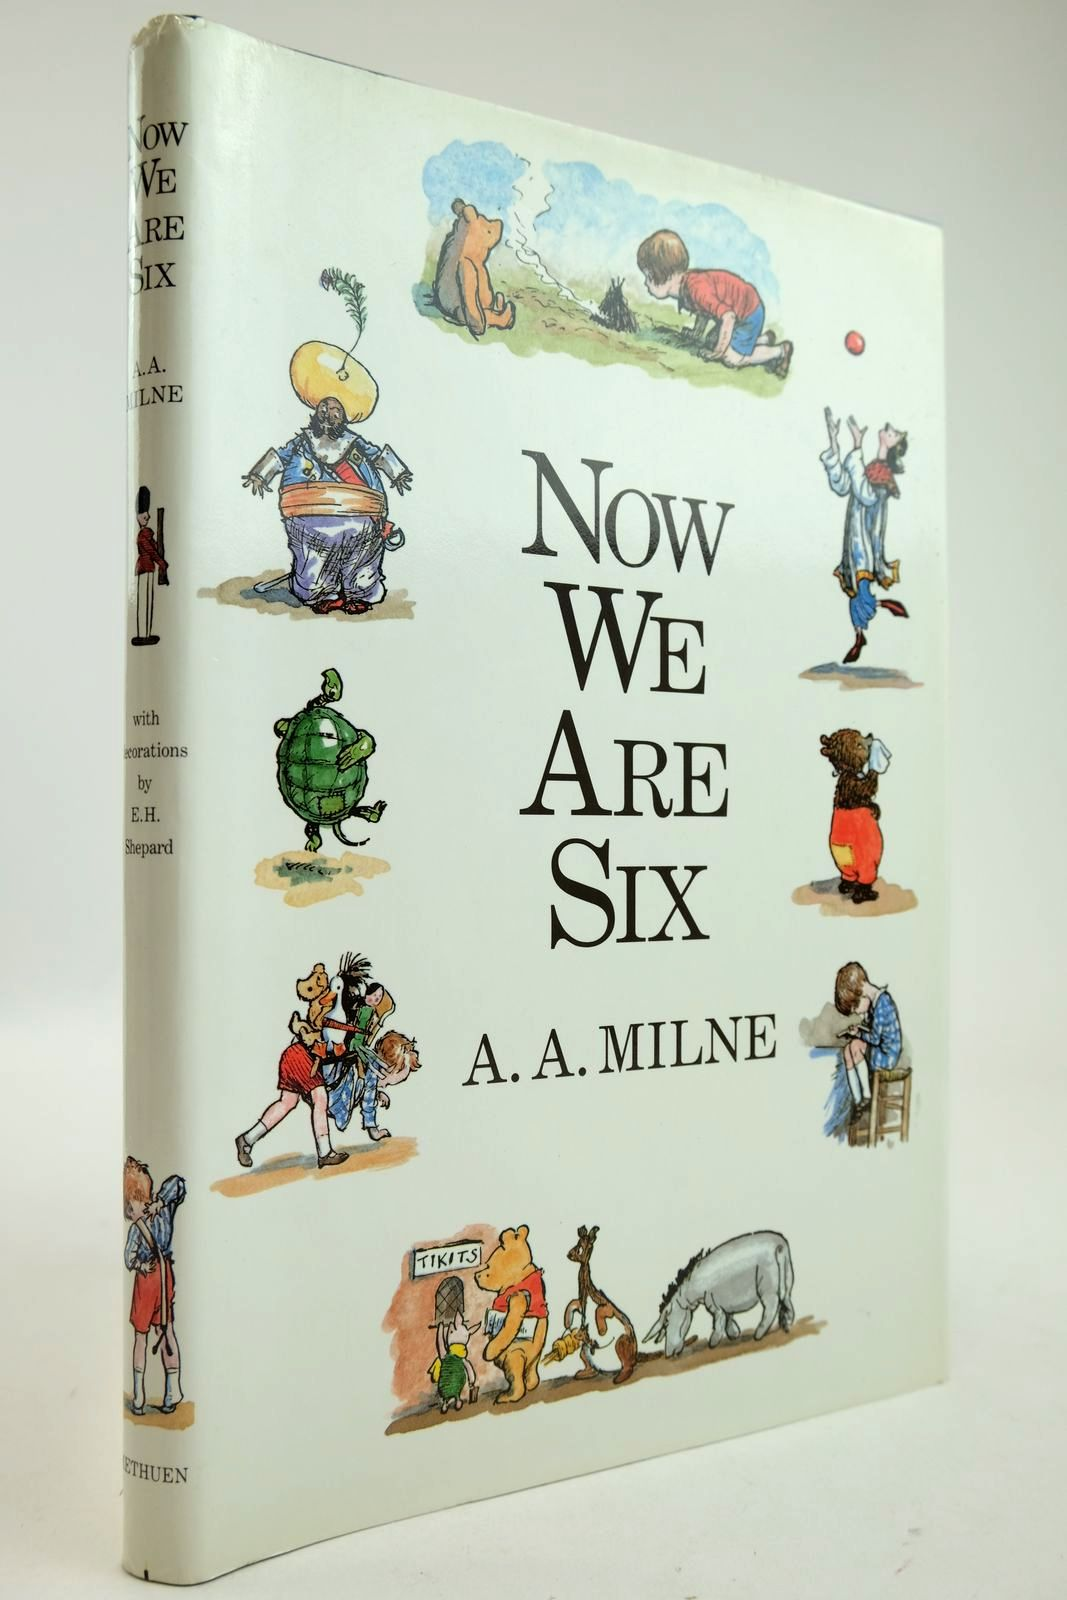 Photo of NOW WE ARE SIX written by Milne, A.A. illustrated by Shepard, E.H. published by Methuen Children's Books (STOCK CODE: 2132882)  for sale by Stella & Rose's Books